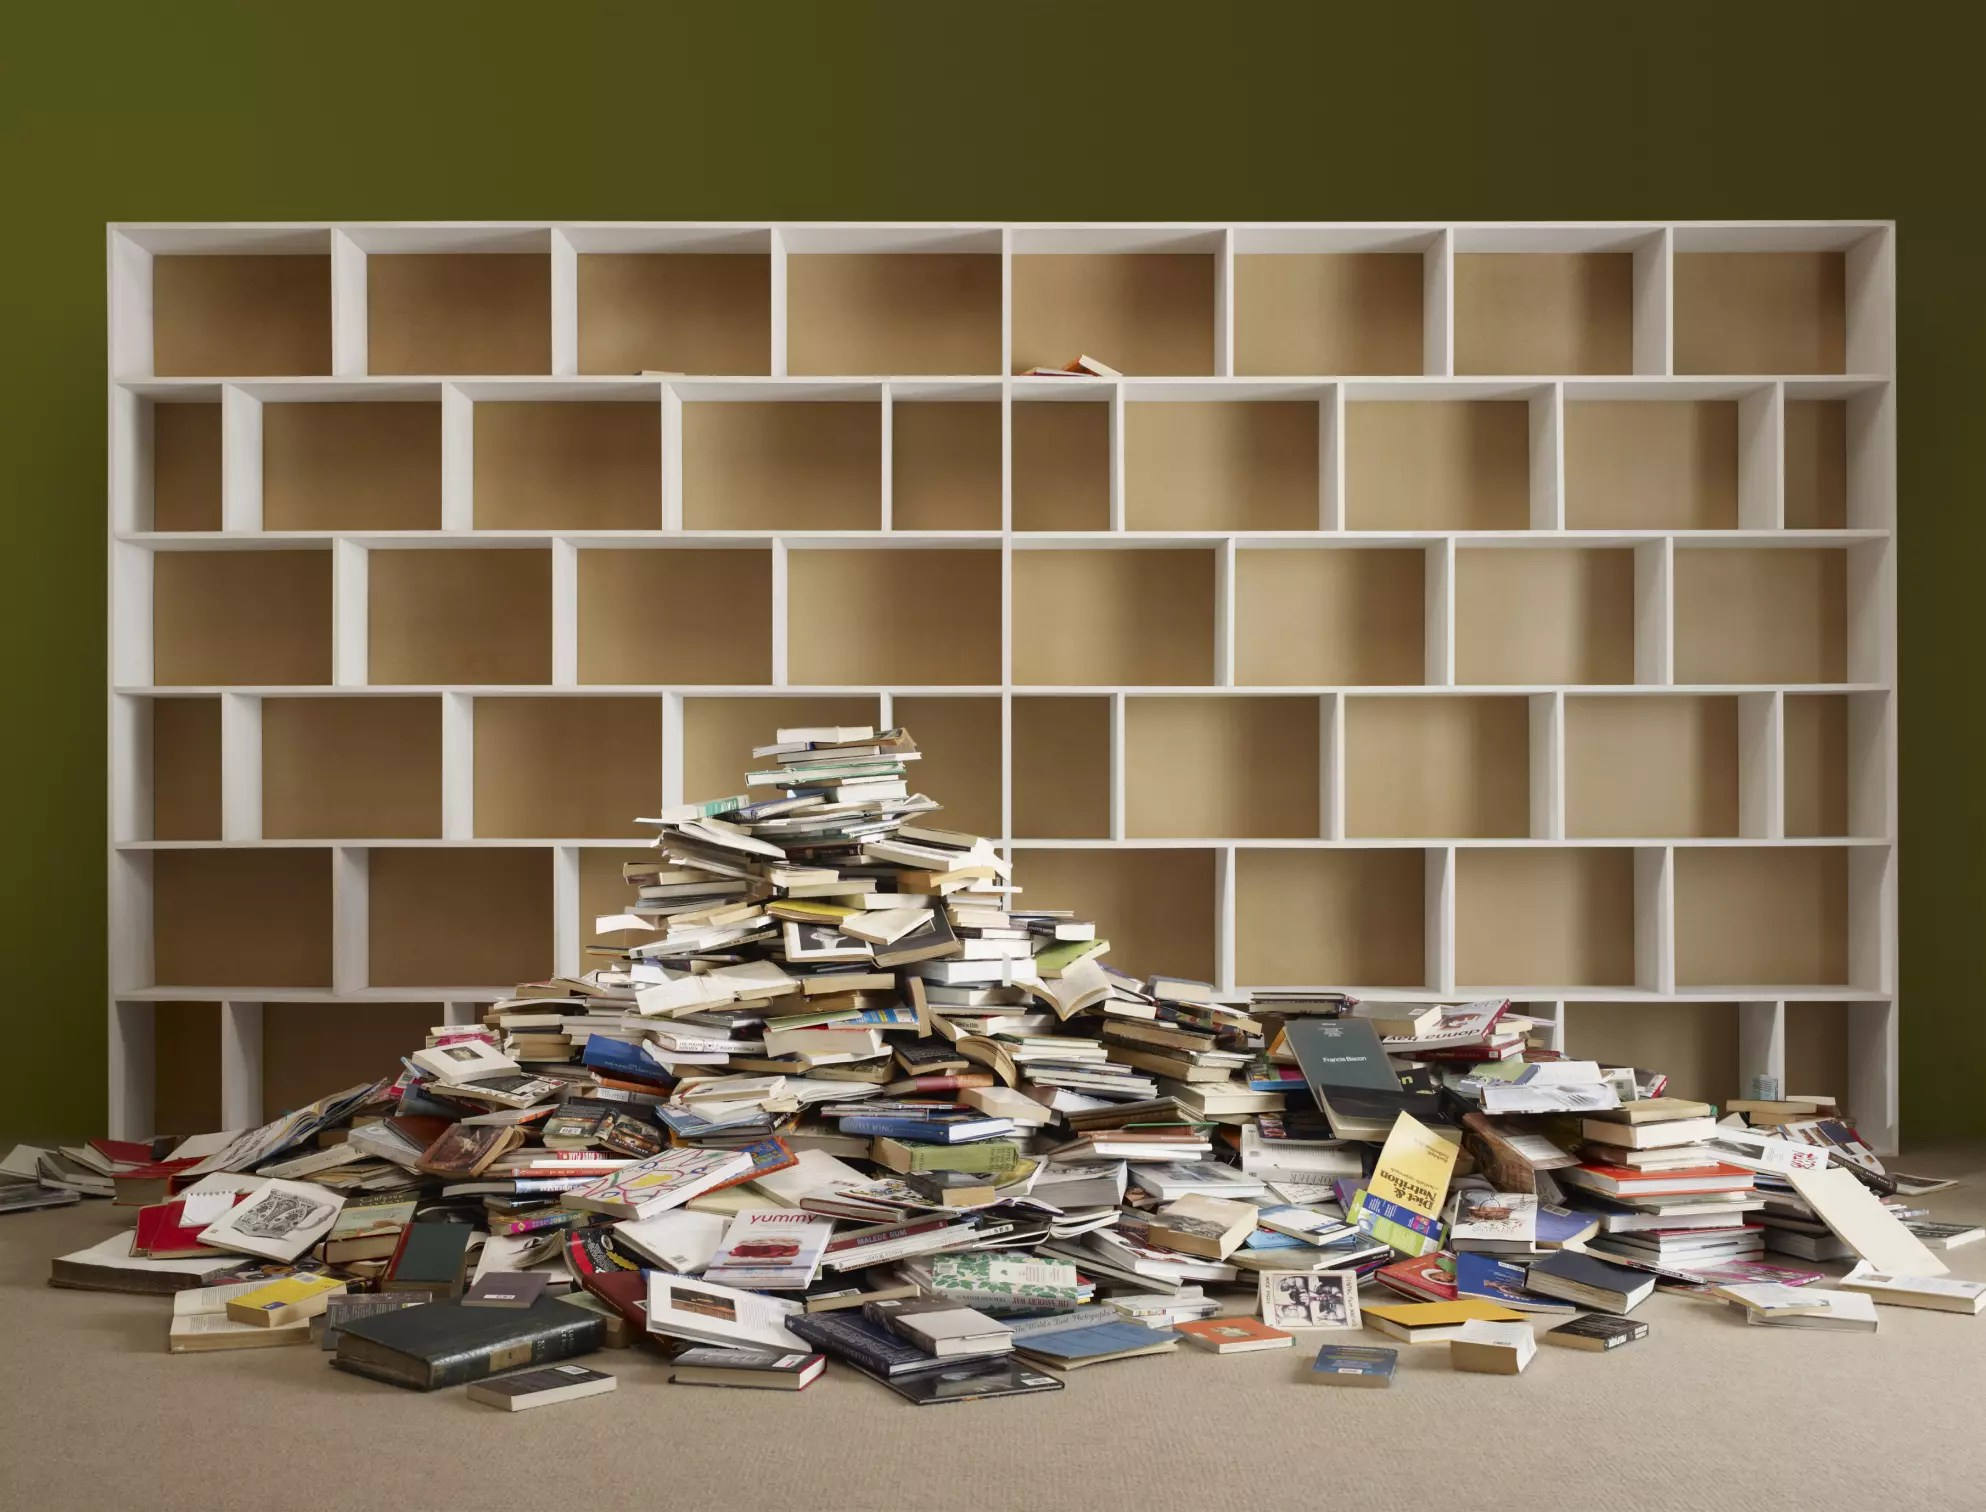 Photo of books on a floor in front of empty bookshelves - The Internet Tips